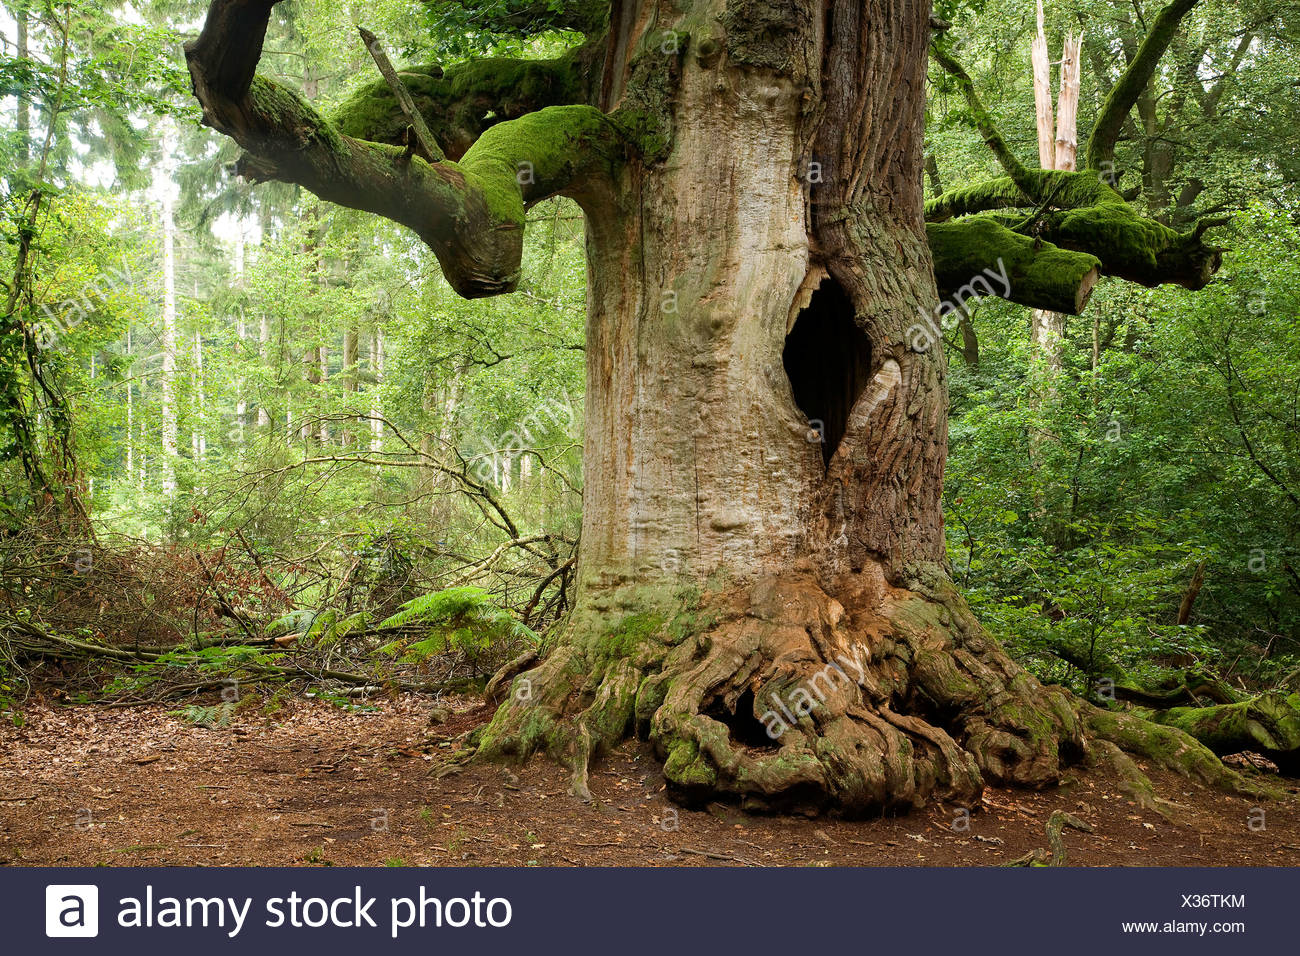 oak (Quercus spec.), old oak in Sababurg forest, Germany, Hesse - Stock Image